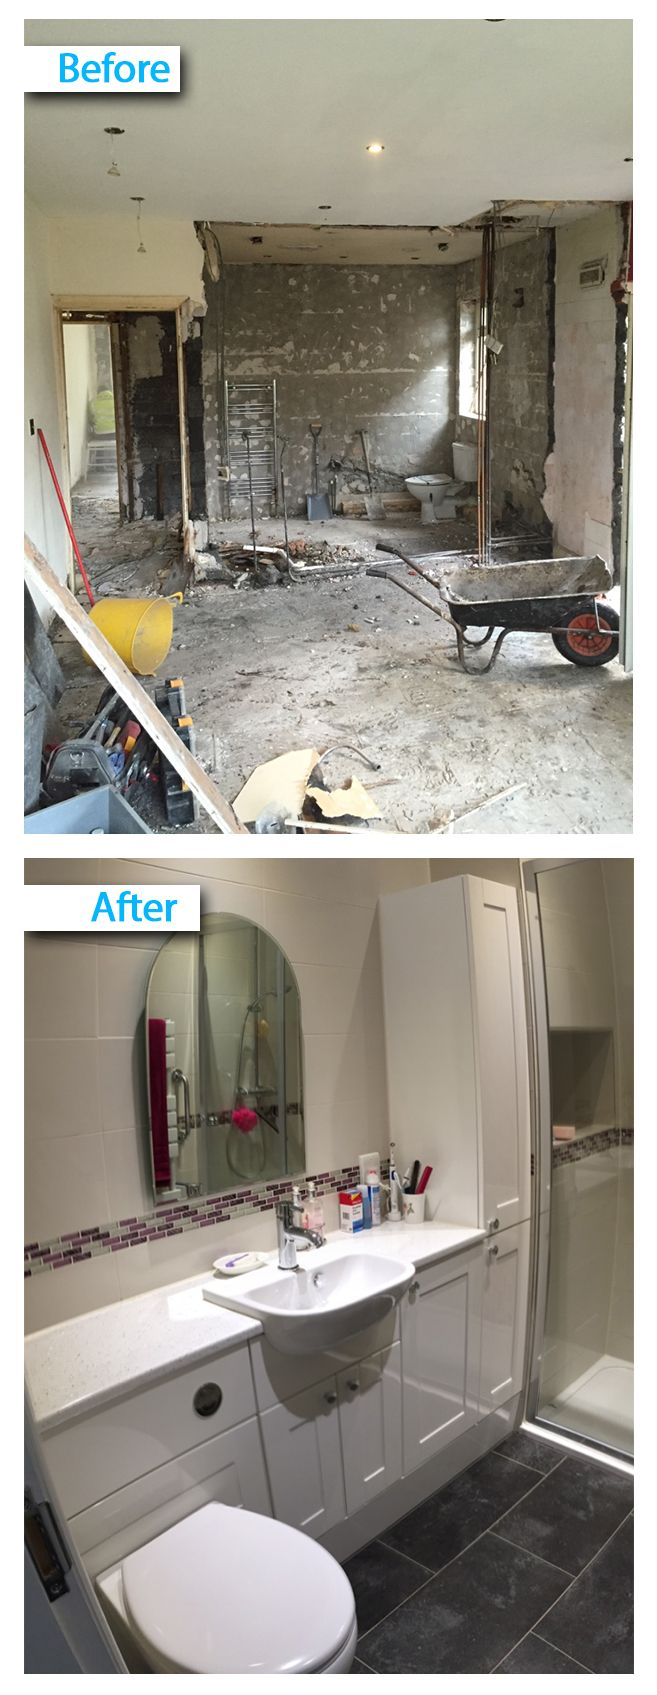 Best UK Bathroom Guru Projects Before After Images Images By - Full bathroom installation